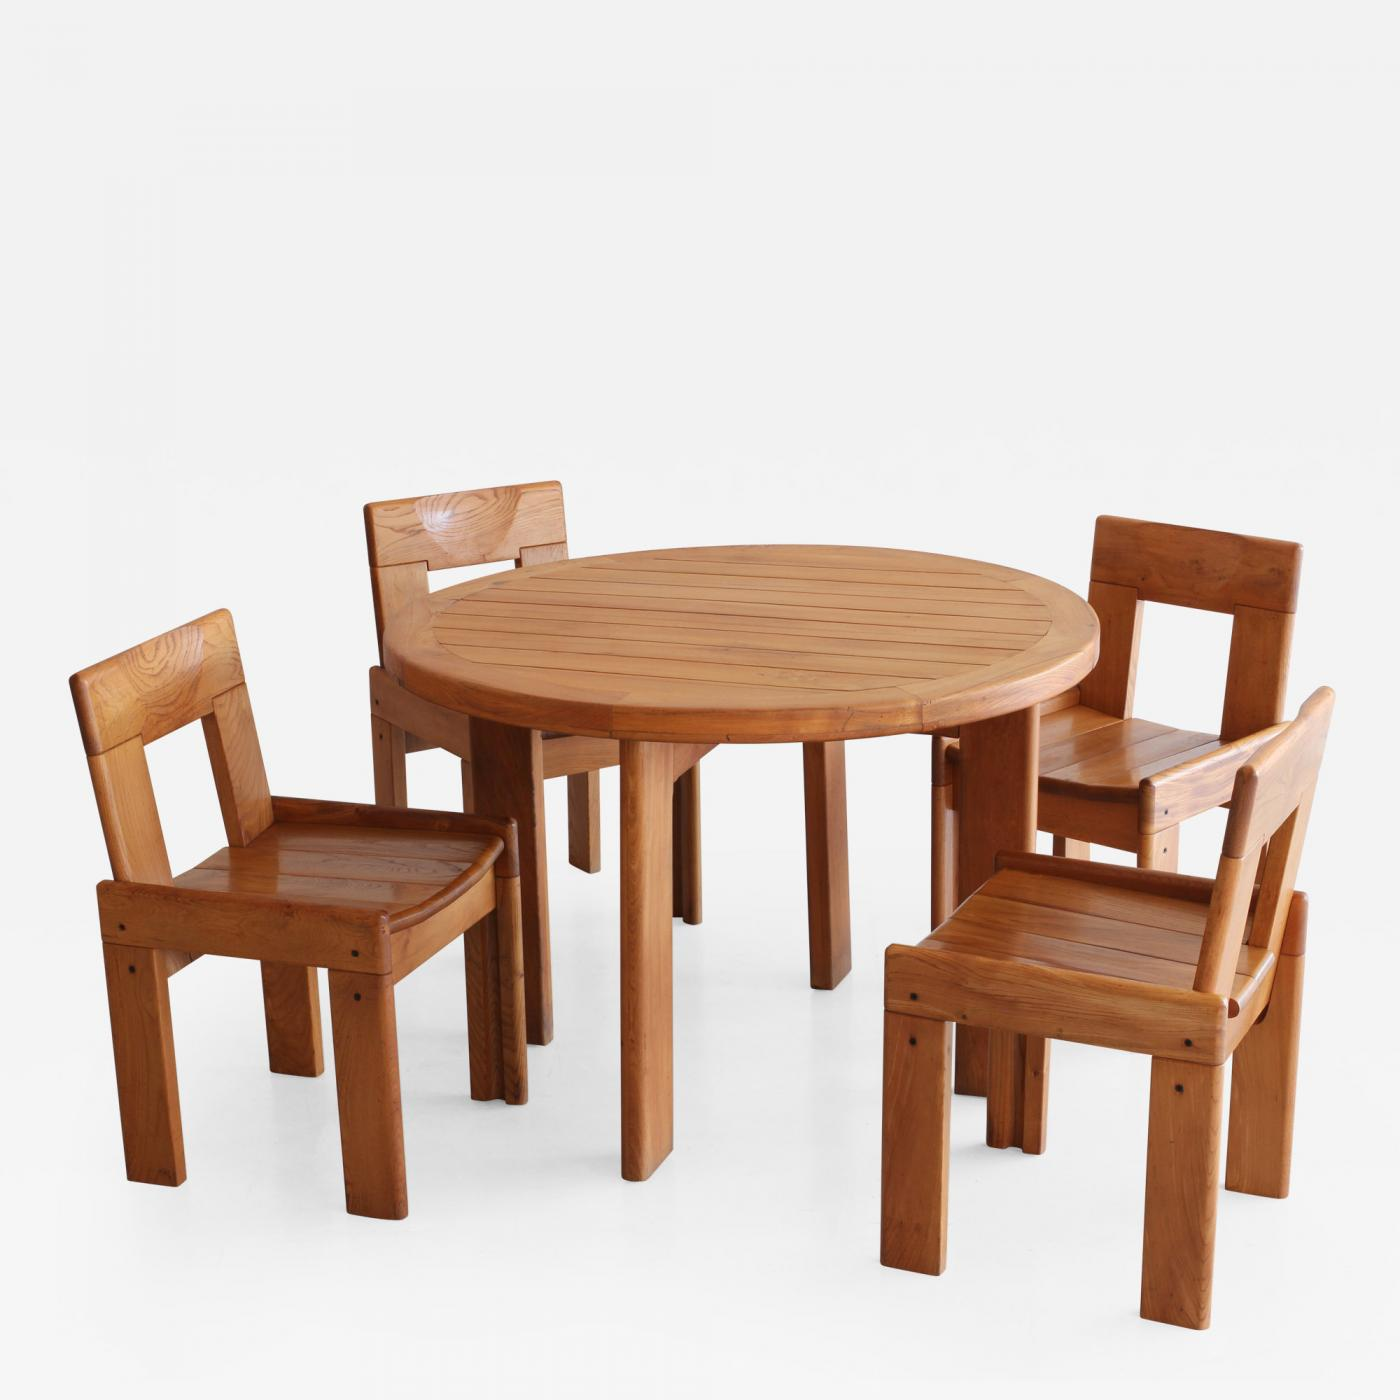 Charlotte Perriand - Dining Table and Chairs in Style of Charlotte Perriand